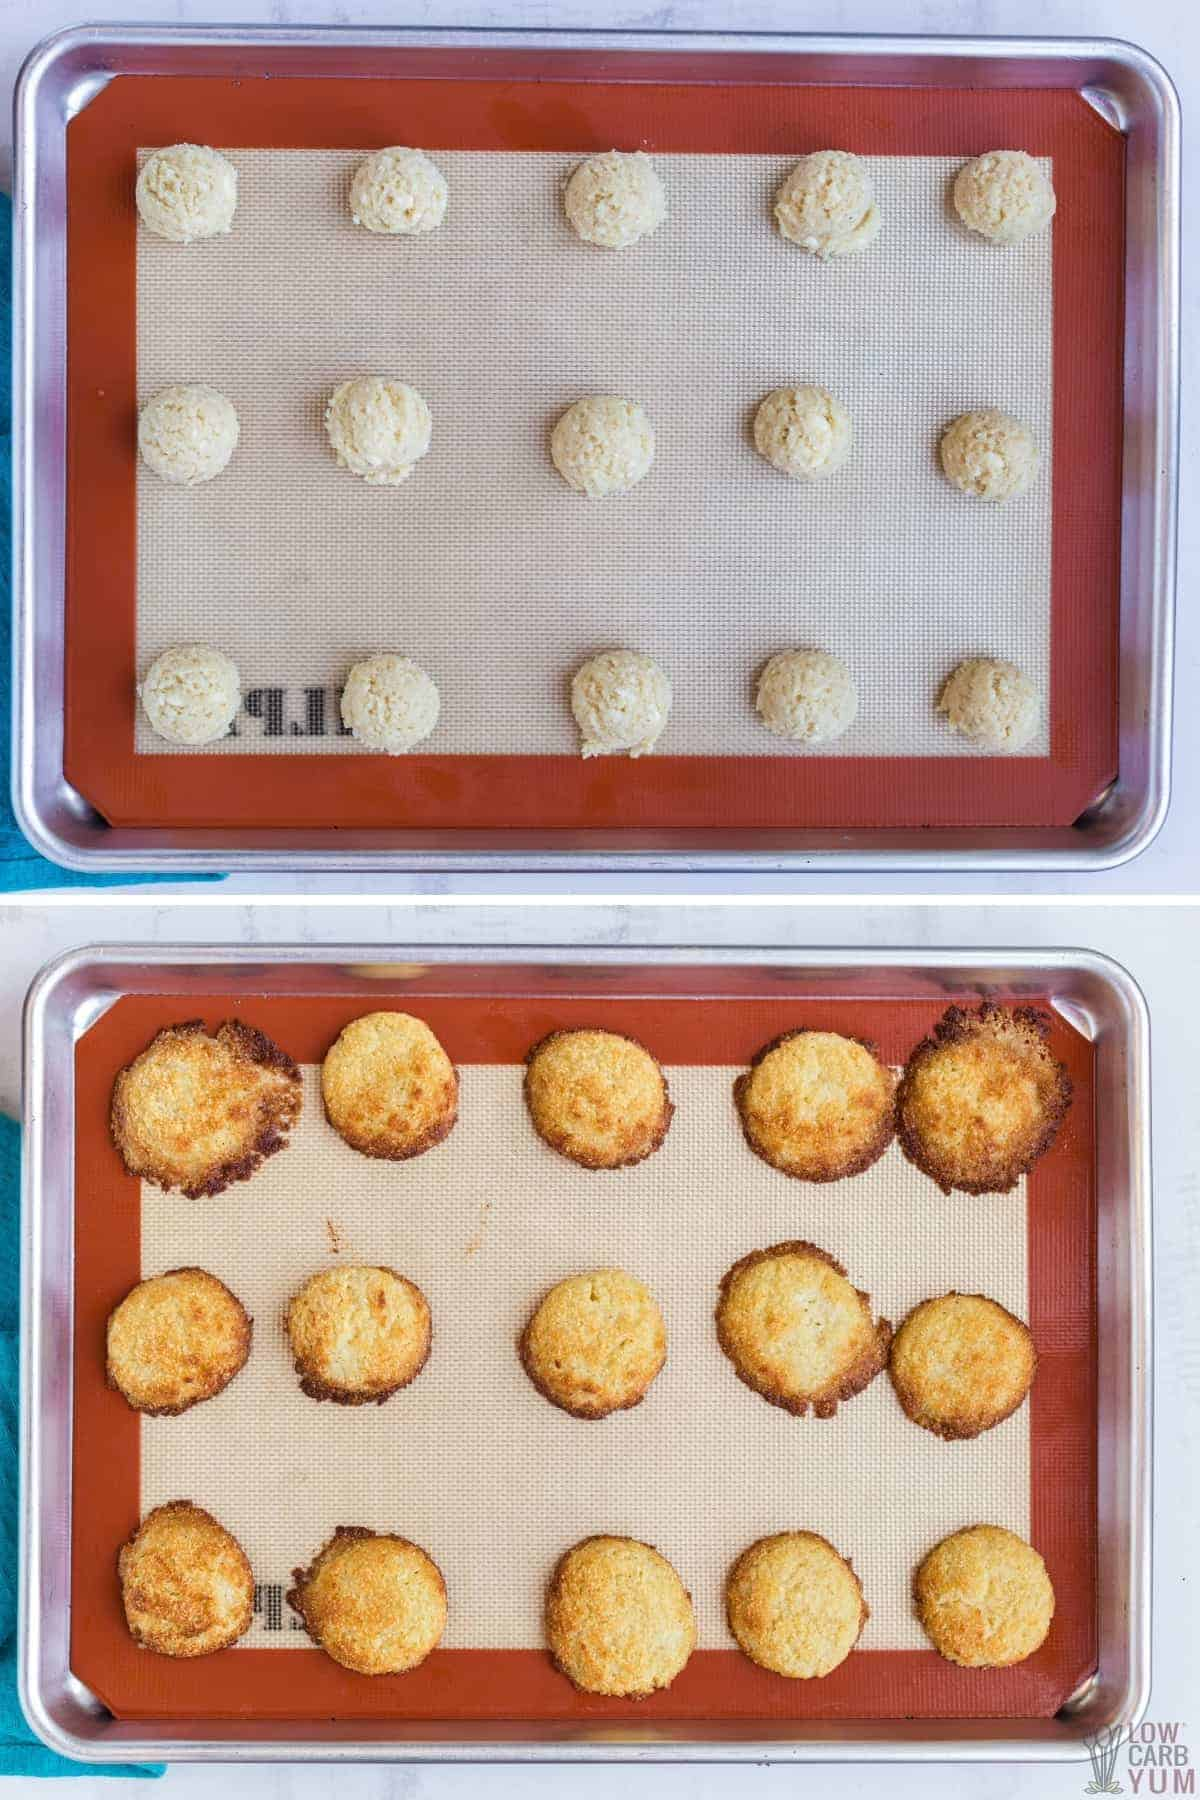 baking the cookie dough scoops on silicone lined baking sheet